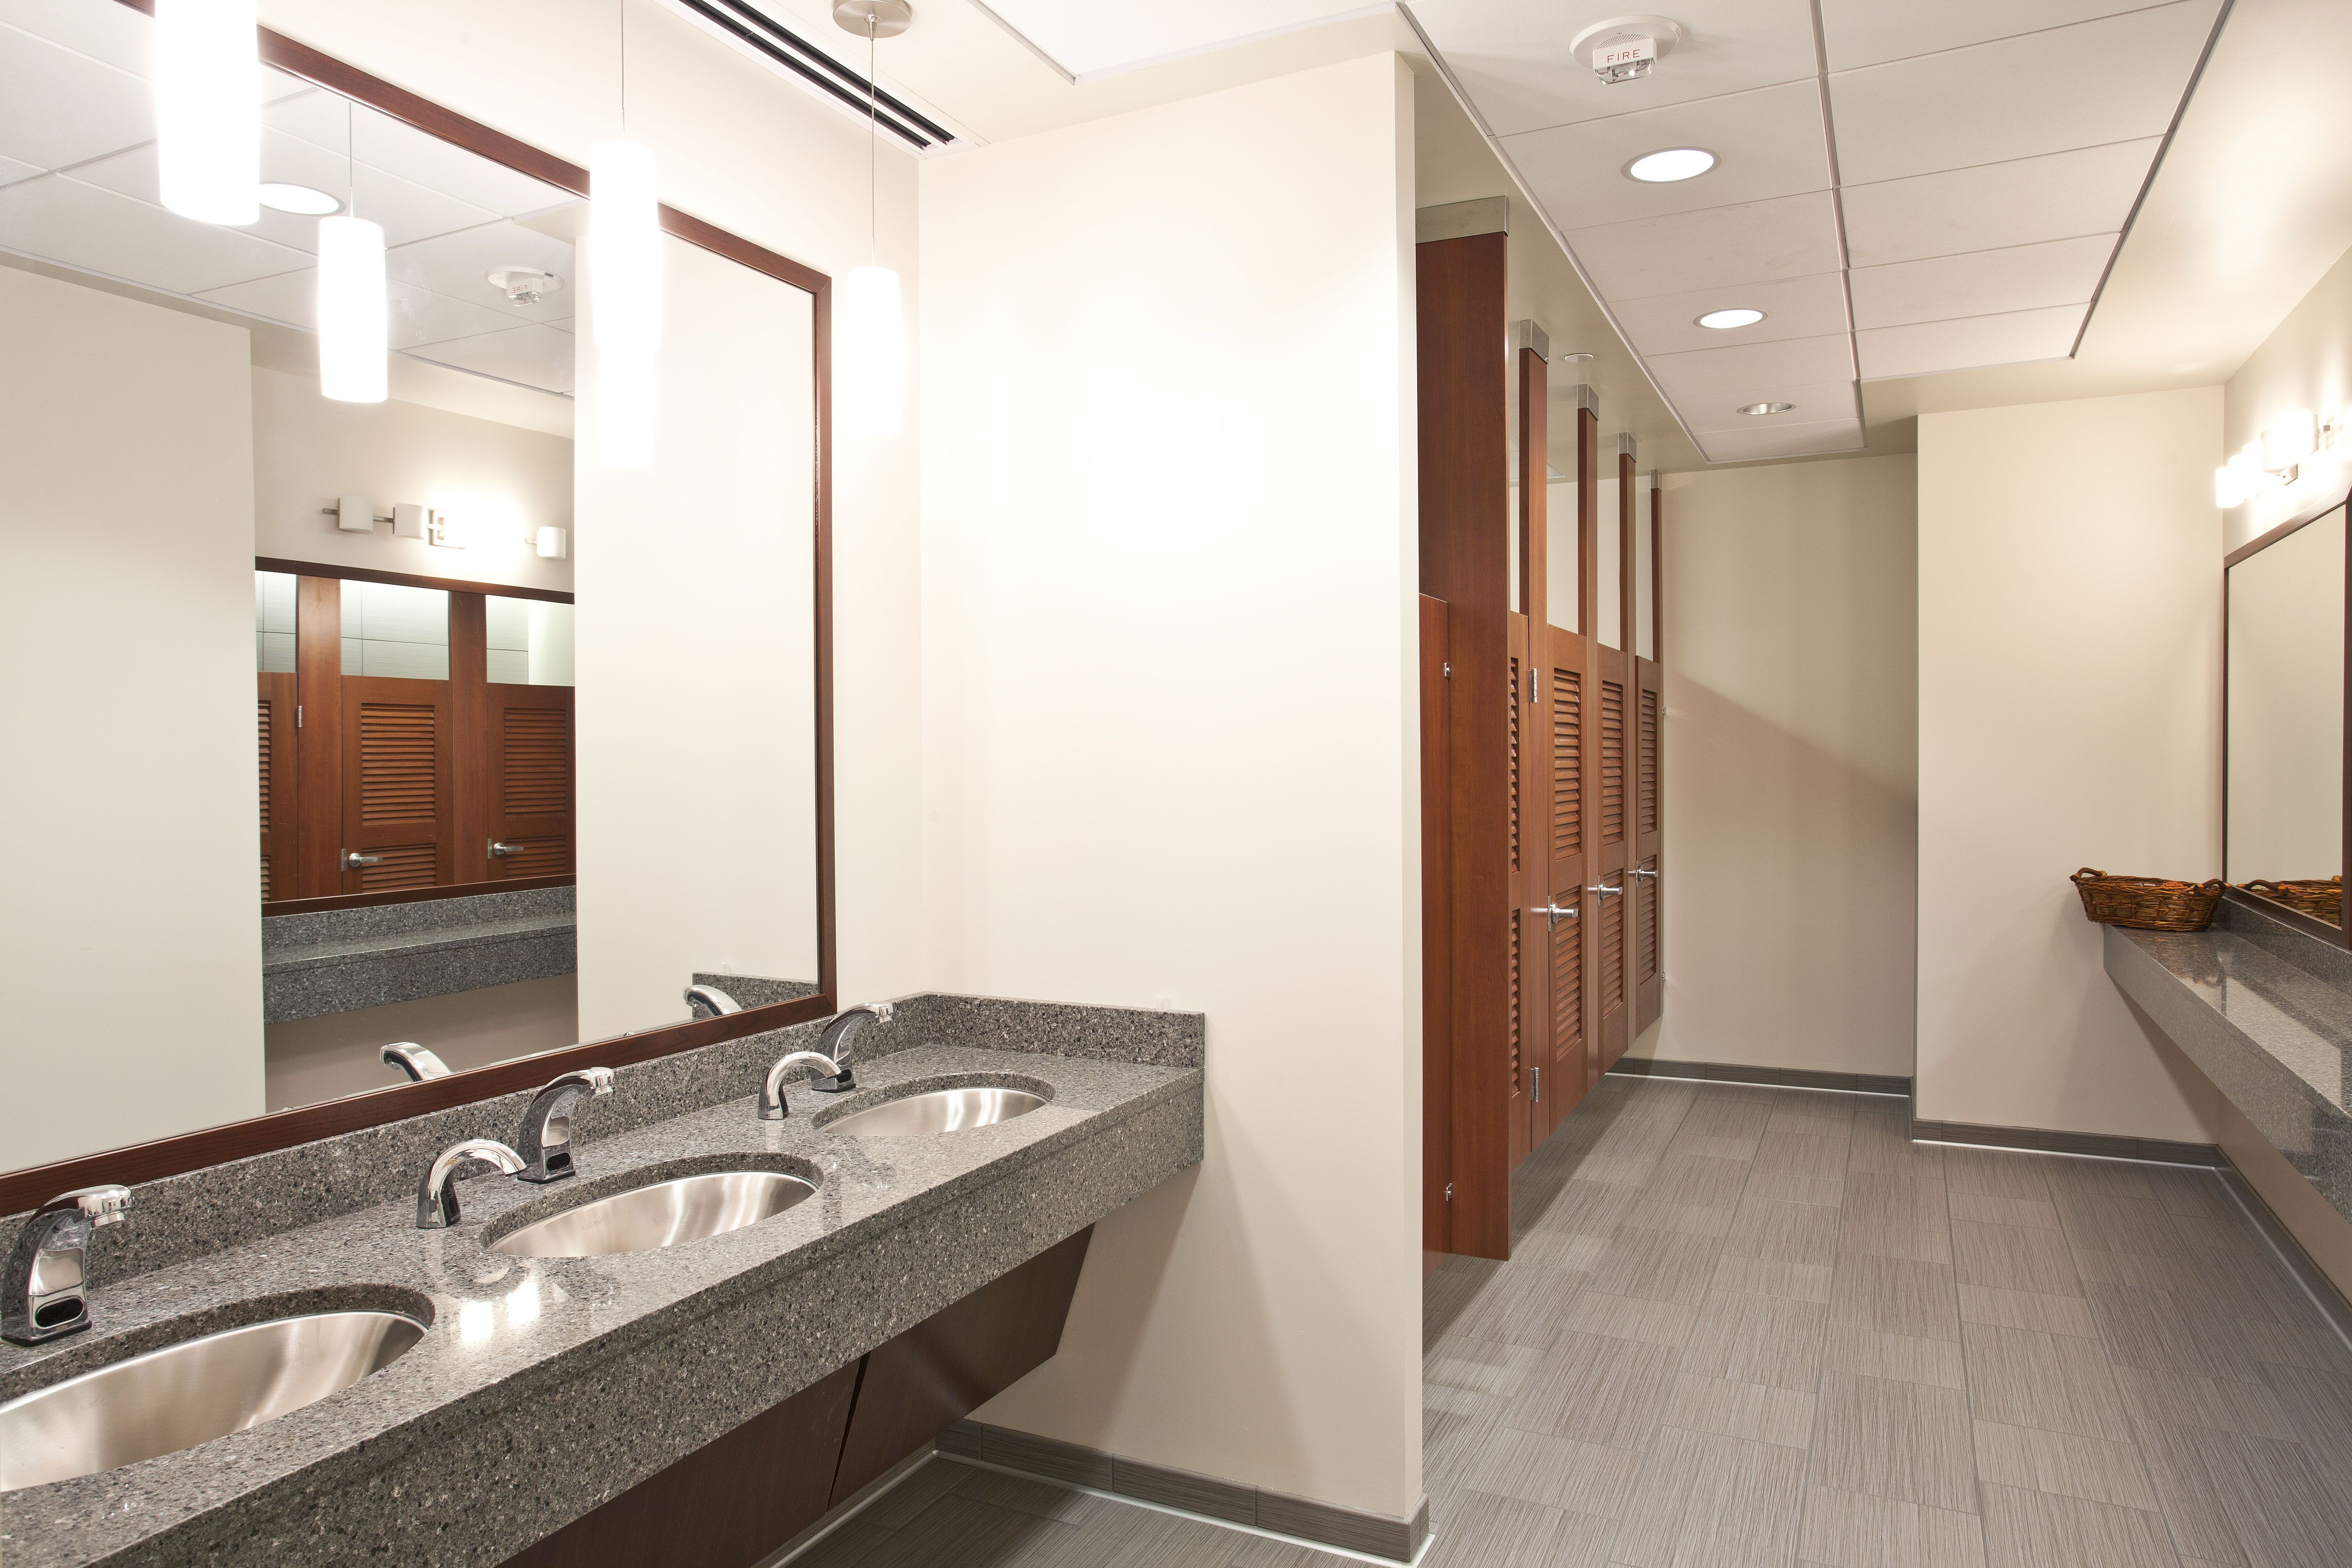 Commercial bathroom partitions 28 images commercial partitions commercial specialties - Commercial bathroom design ...